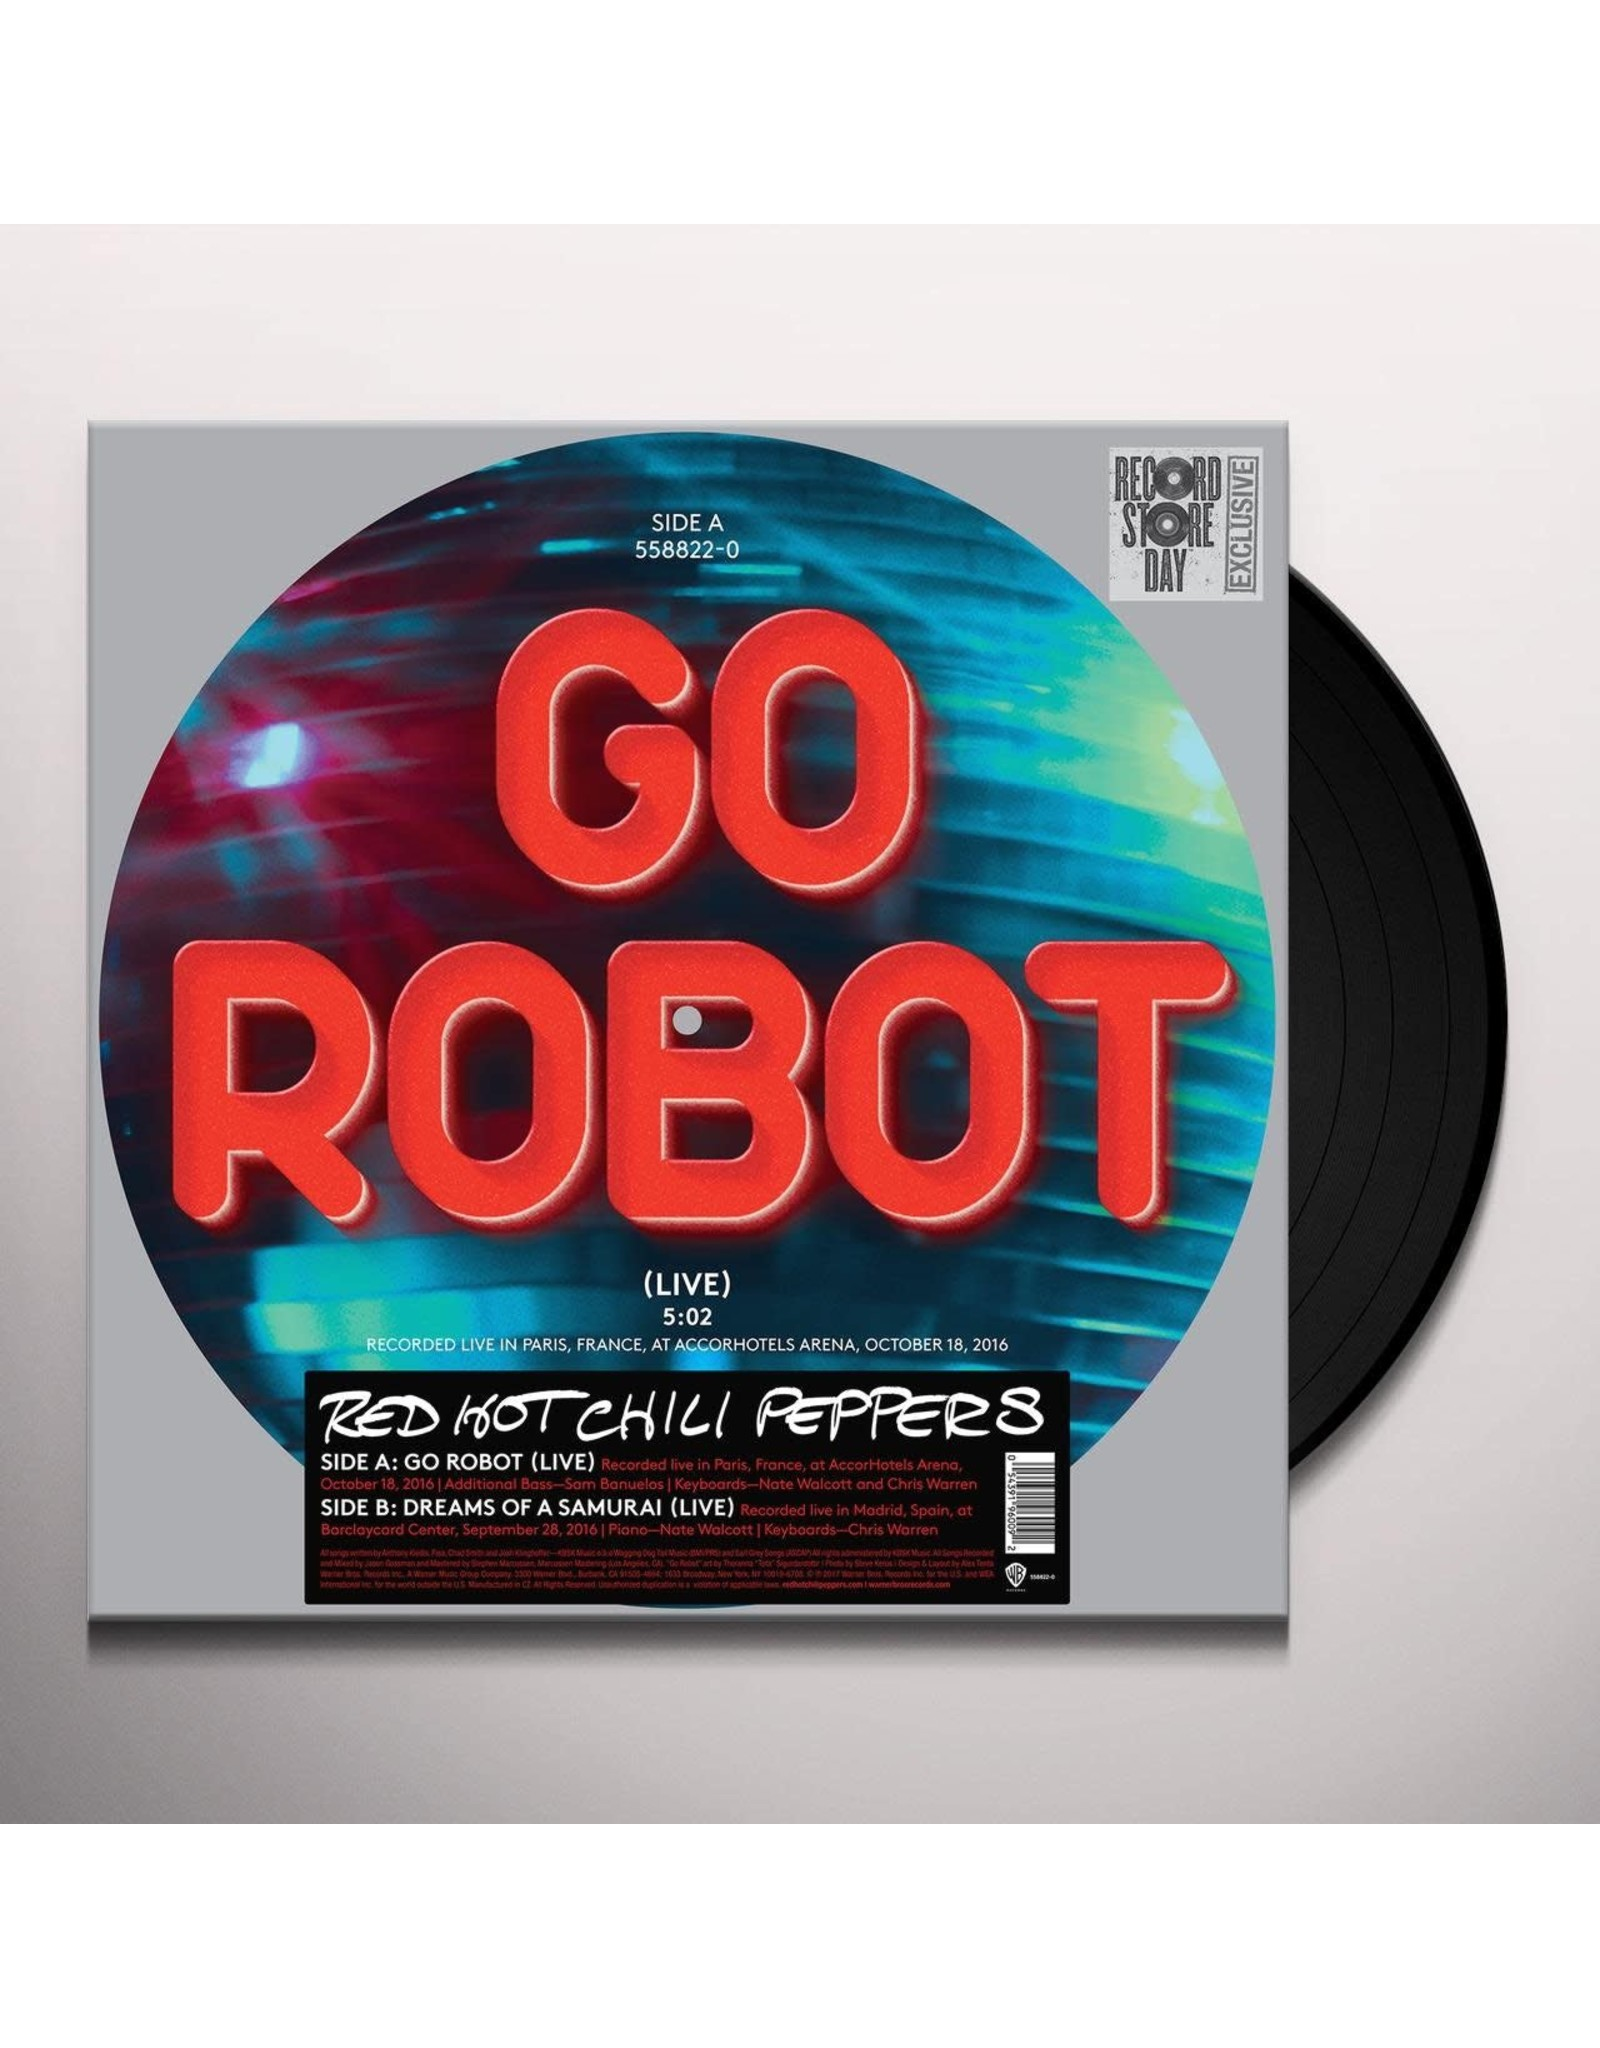 Red Hot Chili Peppers - Go Robot (Picture Disc) LP